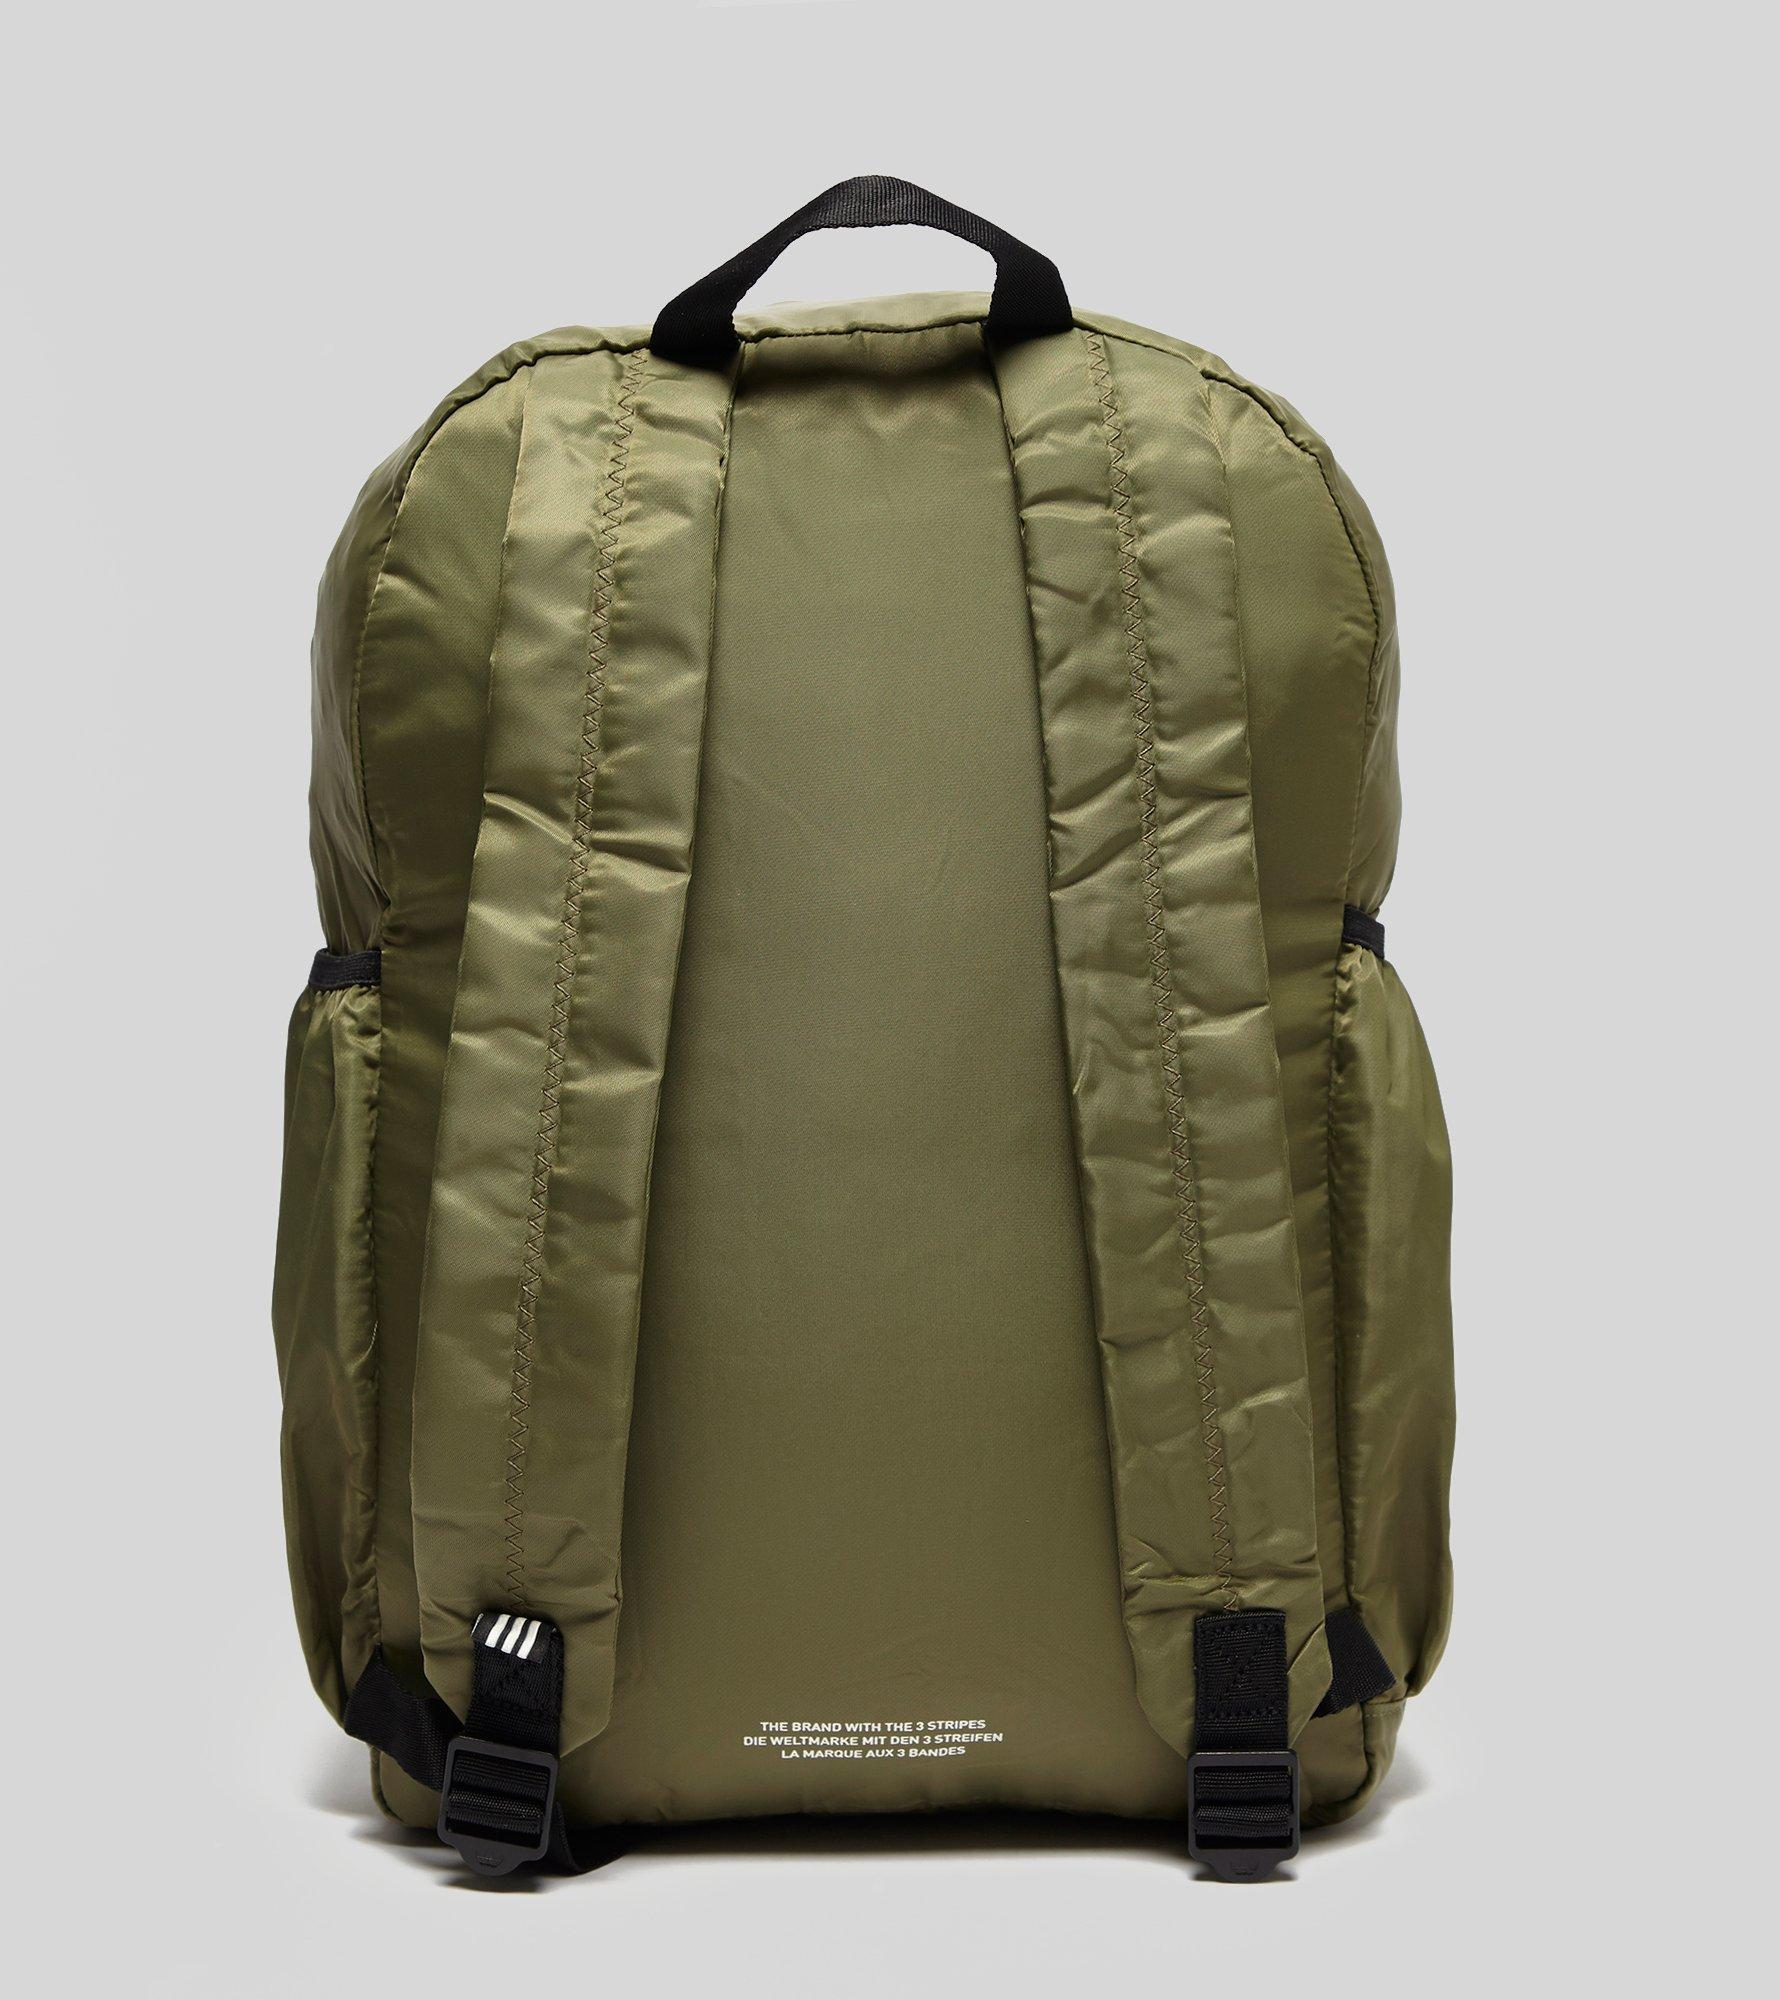 ad802f6e6001 Lyst - adidas Originals Packable Backpack in Green for Men